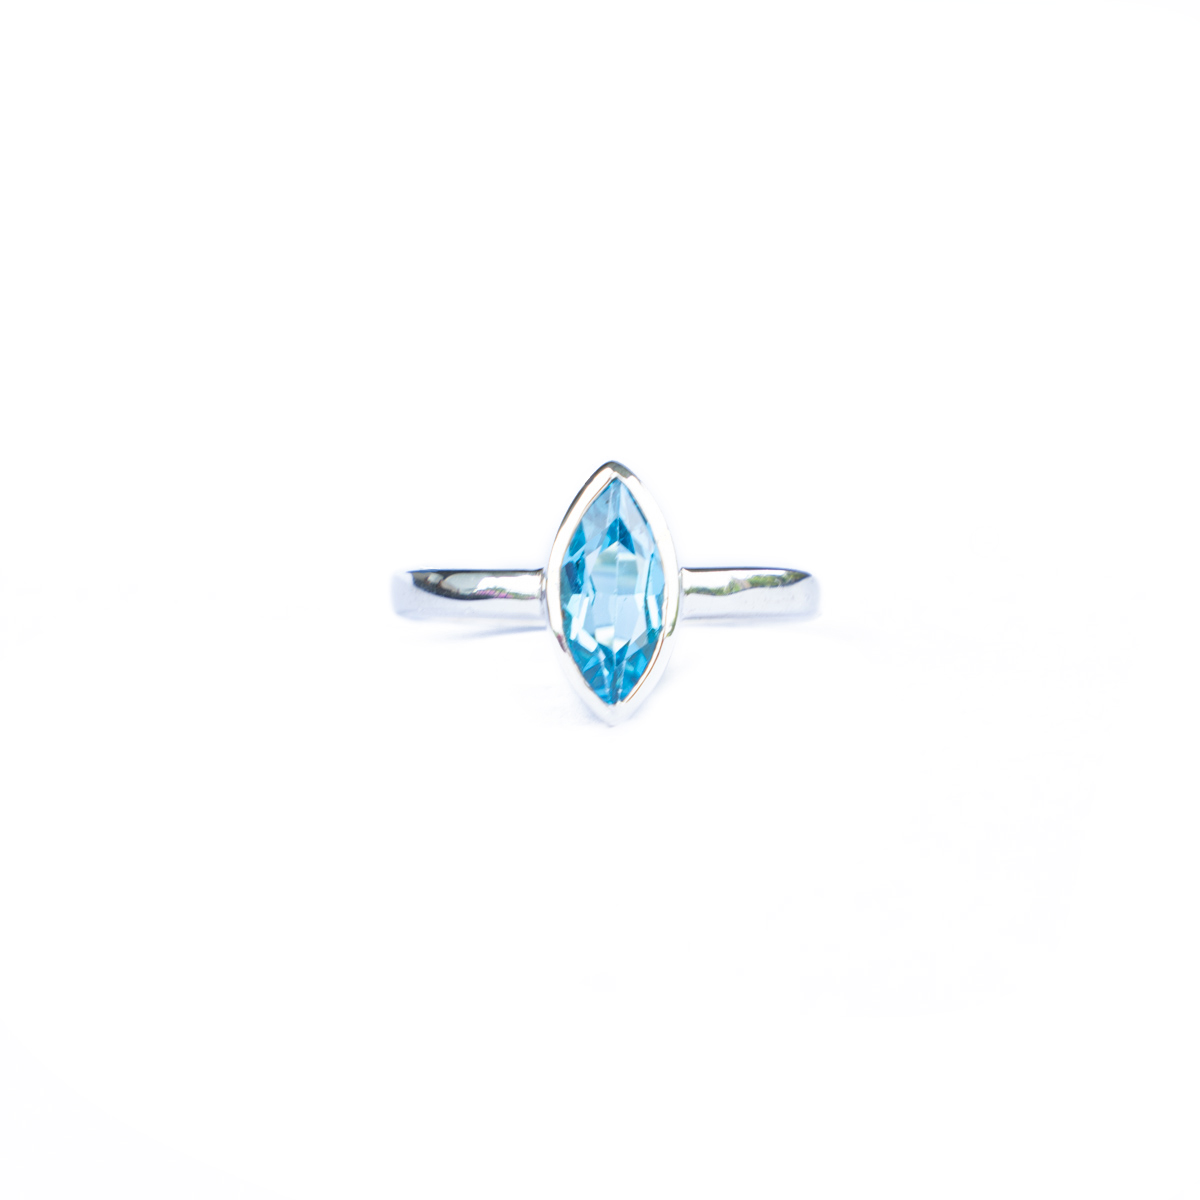 Sri Avinash Infused™ 2.4cts Topaz Ring in Sterling Silver - Divine Spirit & Protection Infusion